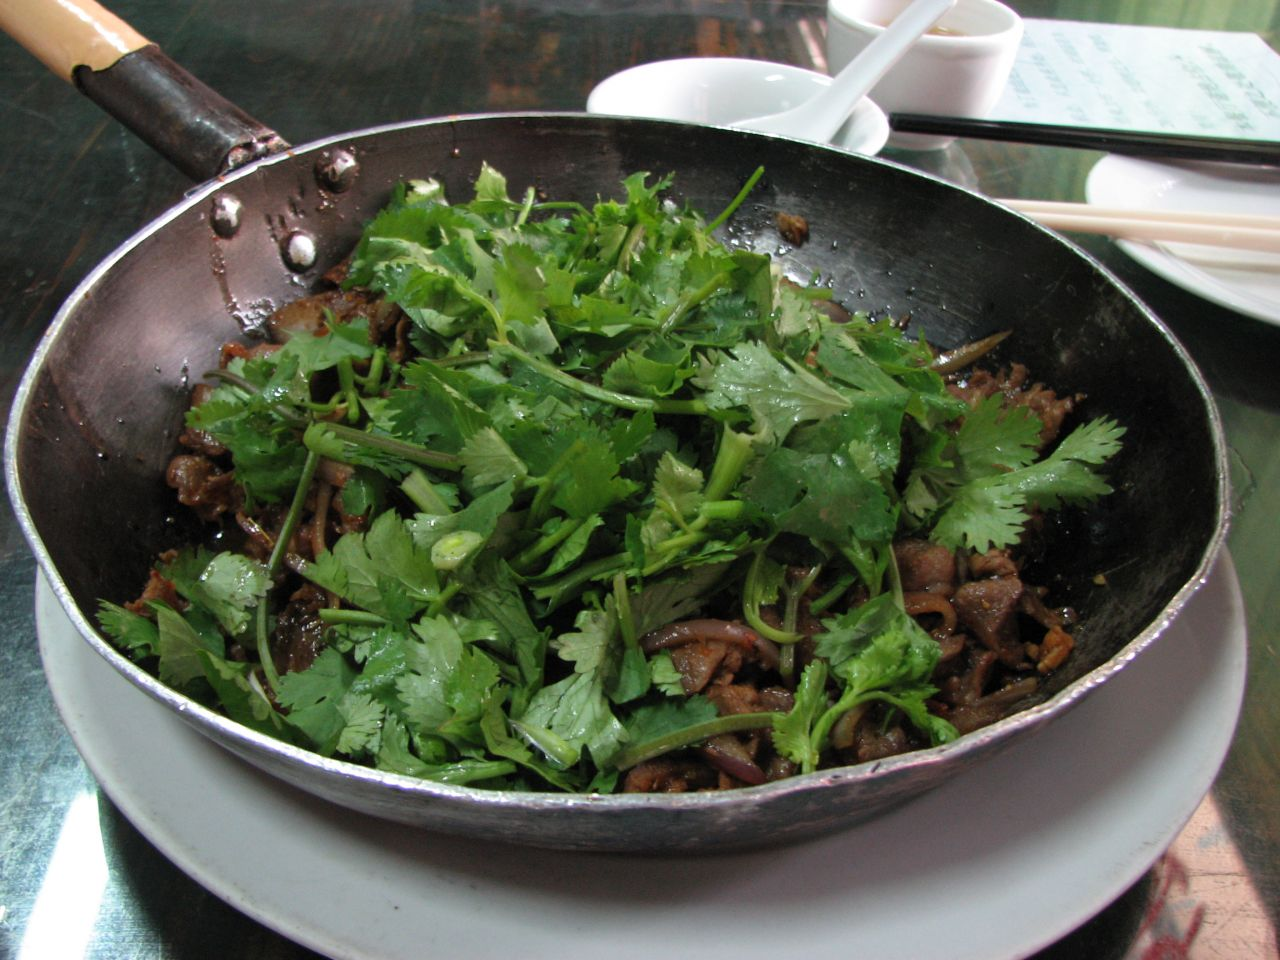 Chinese parsley added to a stir-fried mutton dish.